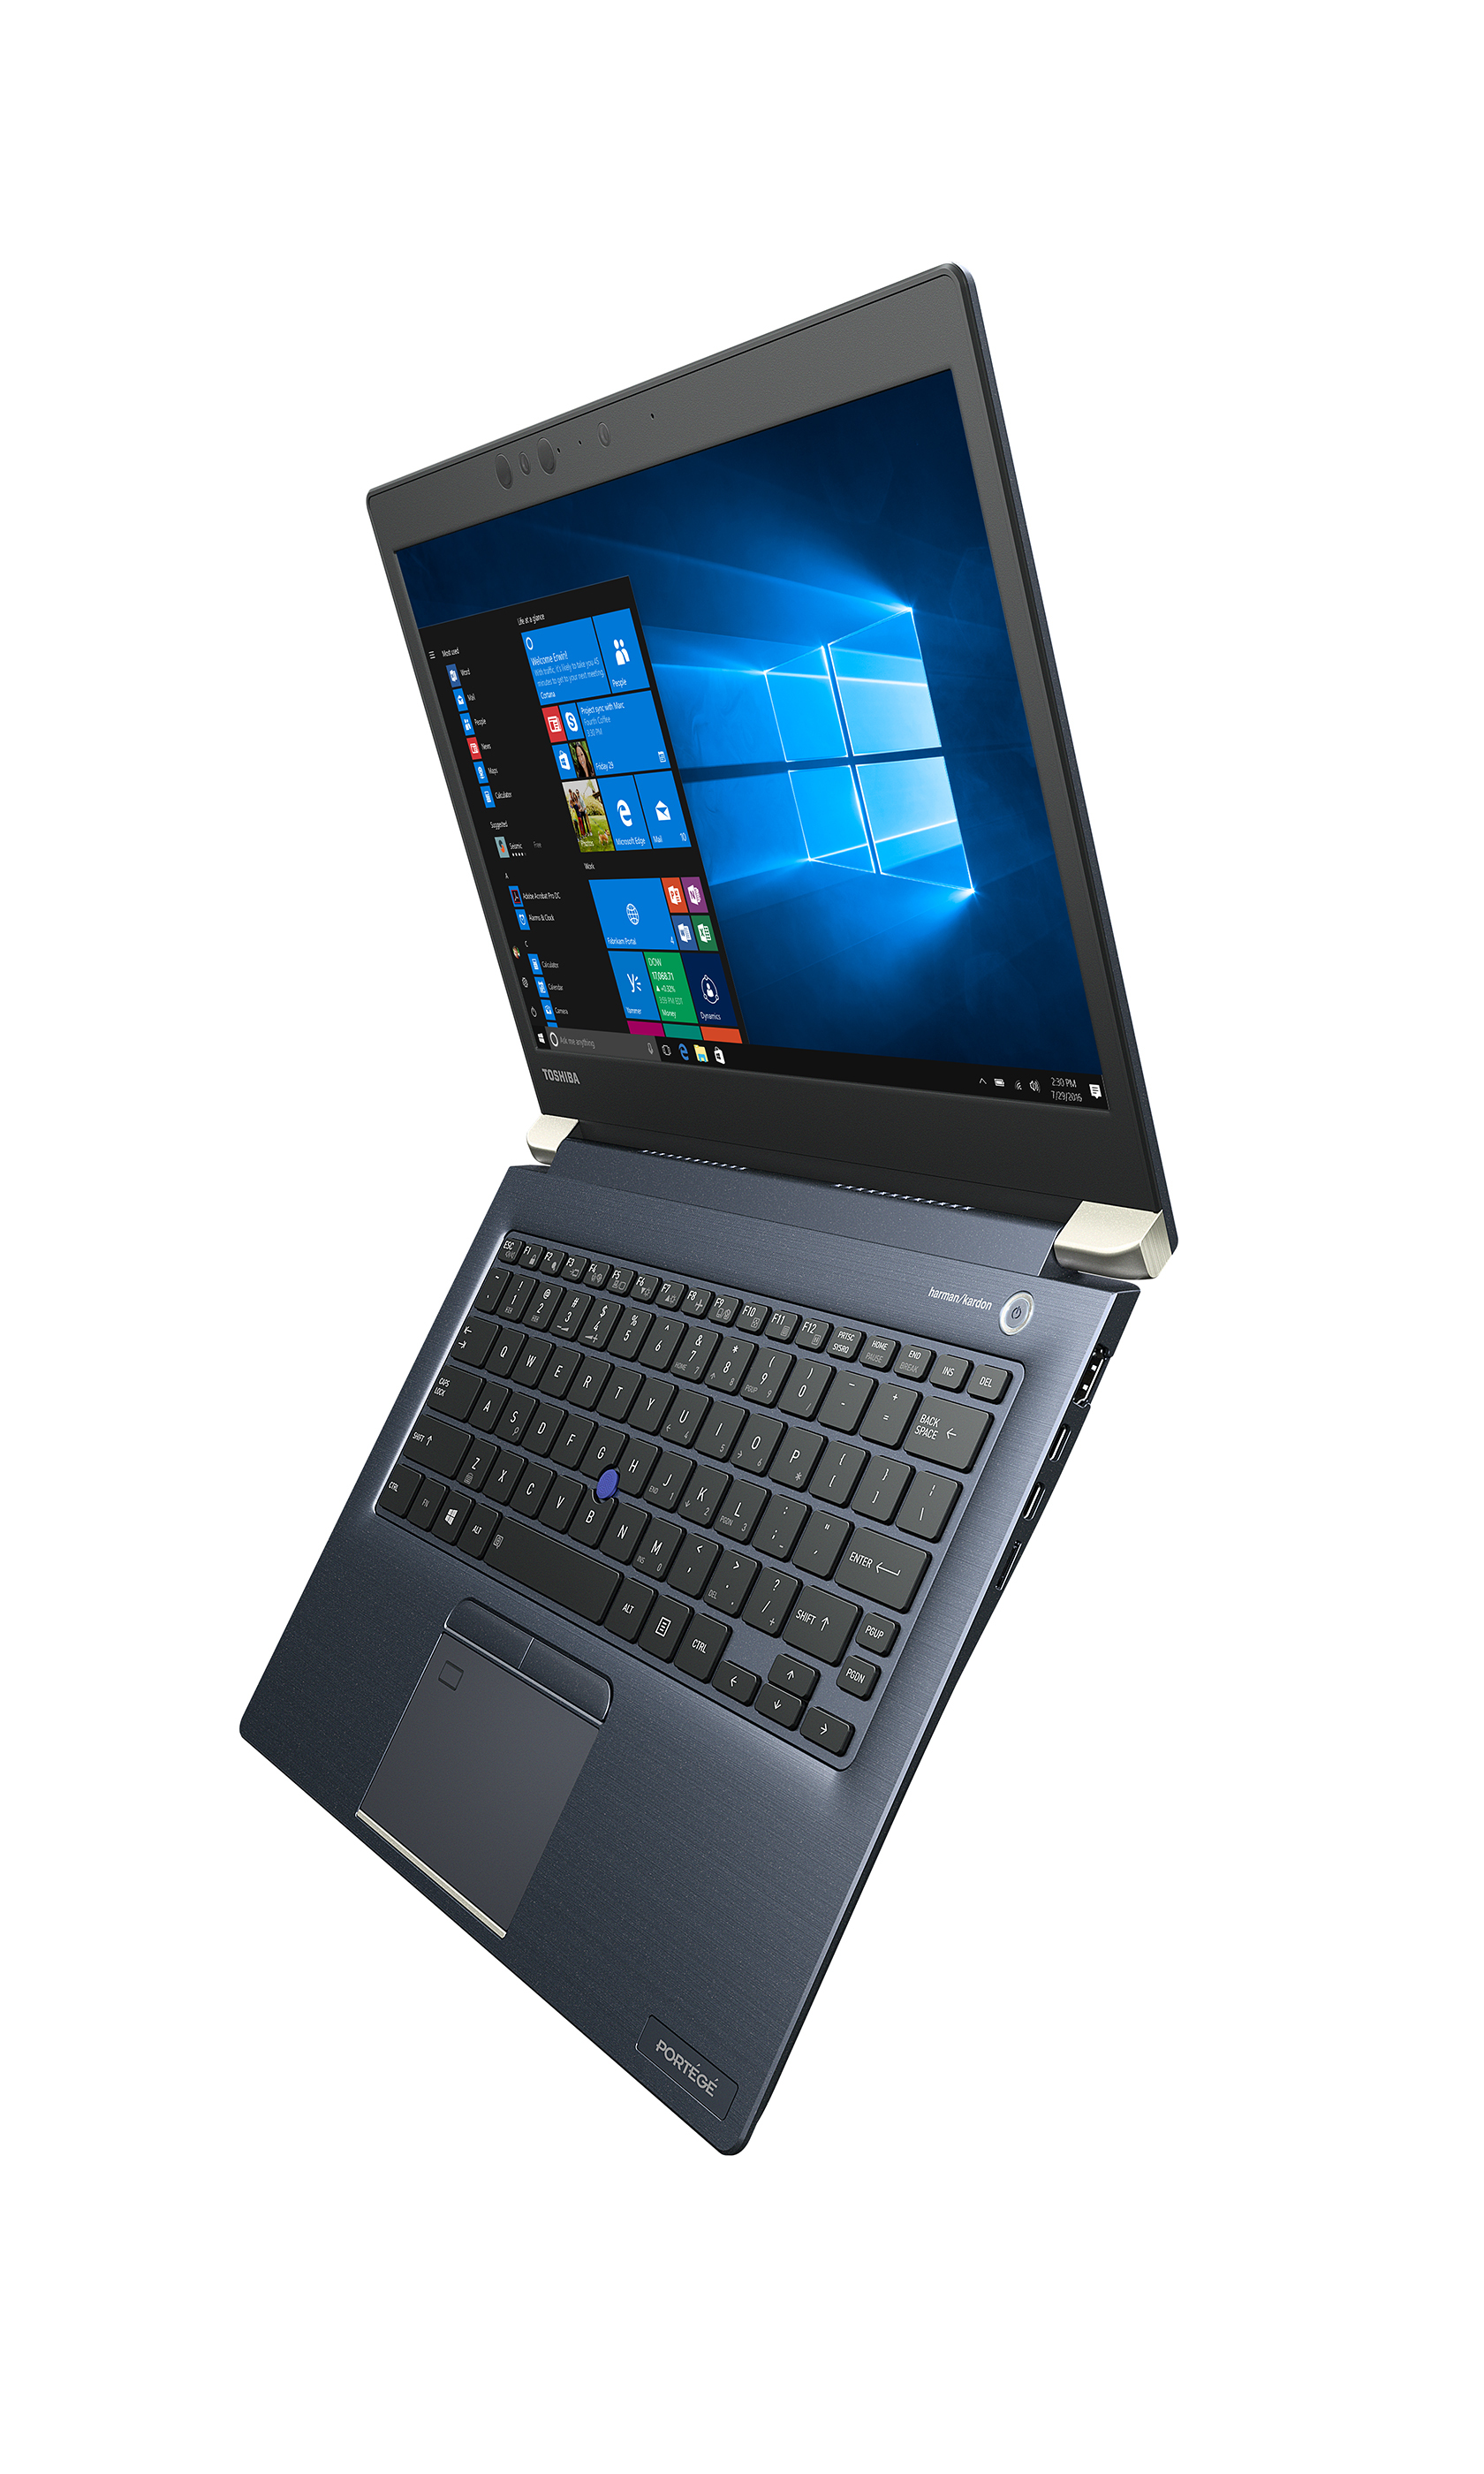 Toshiba's Portégé X30 is the company's new ultra-portable notebook powered by 7th Generation Intel Core Processors and running Windows 10 Pro. (Photo: Business Wire)